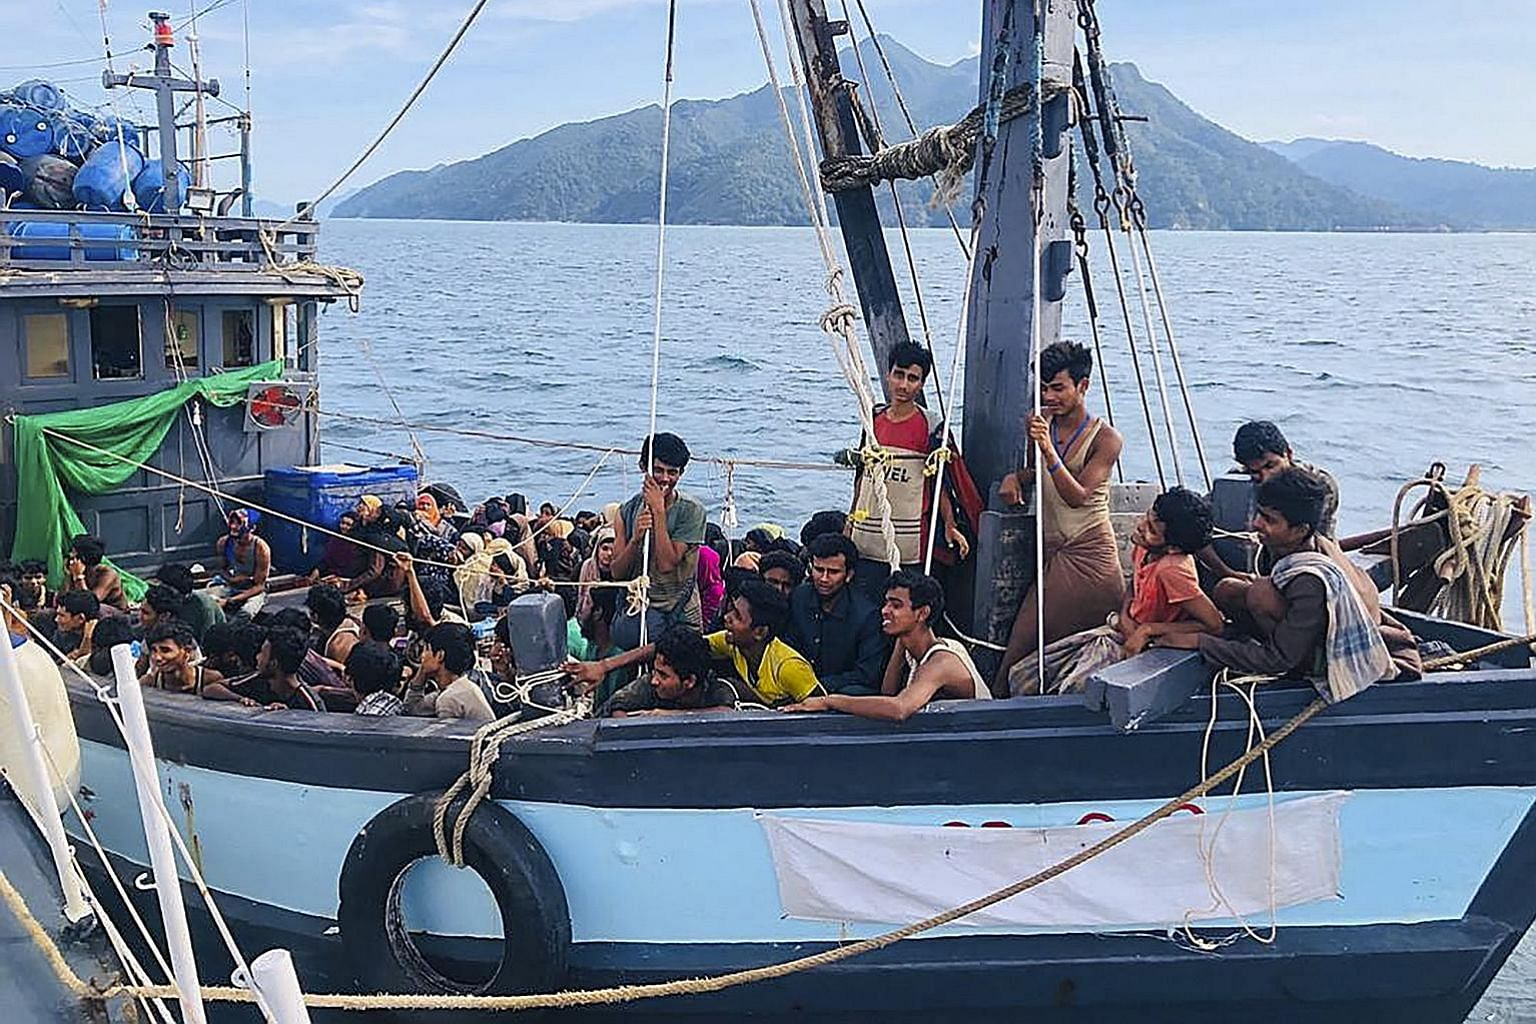 A photo from the Malaysian Maritime Enforcement Agency showing a wooden boat carrying suspected Rohingya migrants who had been detained in Malaysian territorial waters, off the island of Langkawi, yesterday. A boatload of more than 200 Rohingya refug